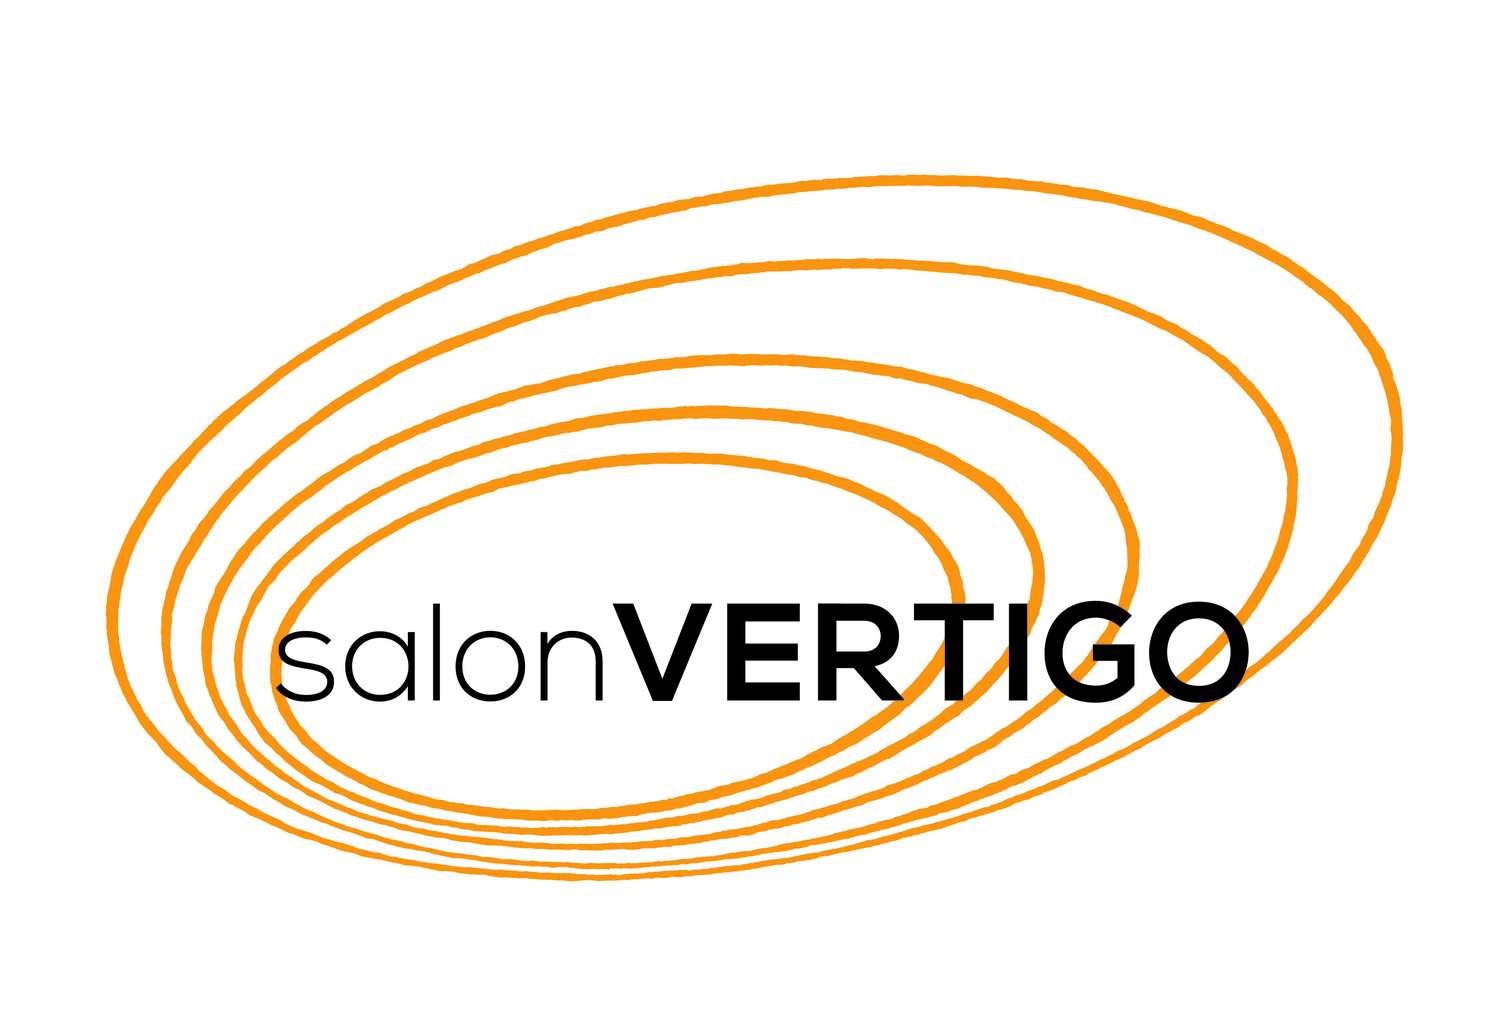 salon vertigo